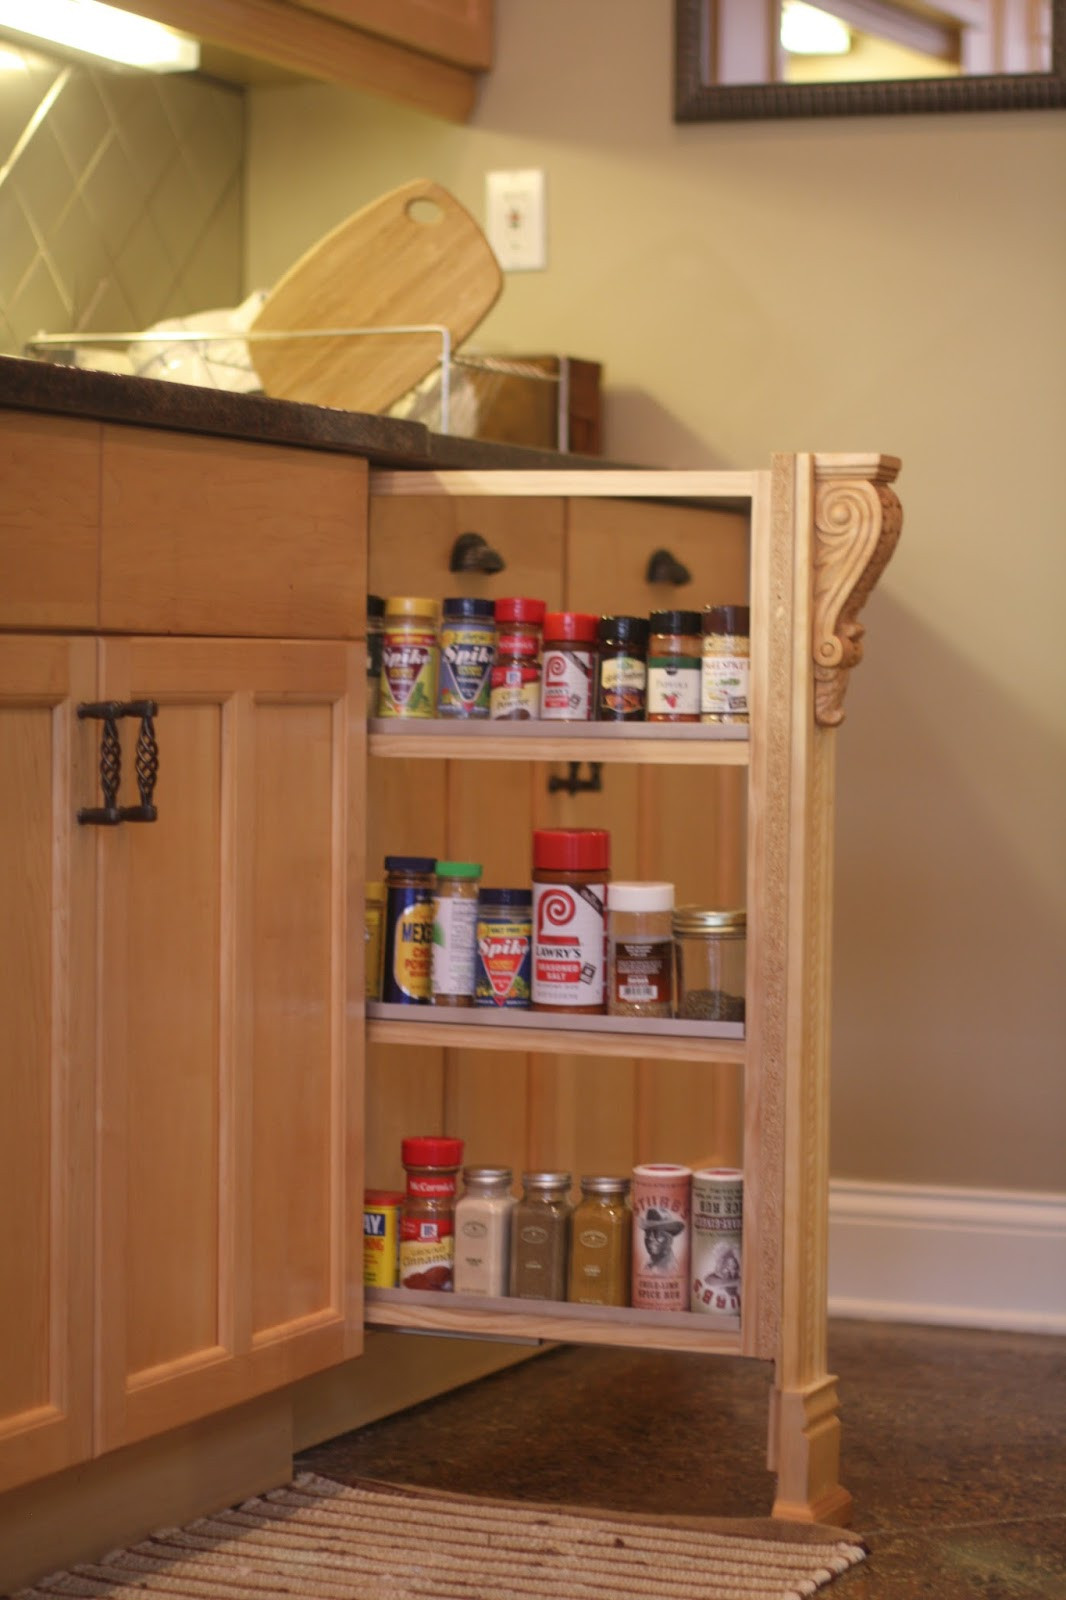 Best ideas about DIY Pull Out Spice Rack . Save or Pin DIY Slide out Spice Rack pleted HandyHubby Now.